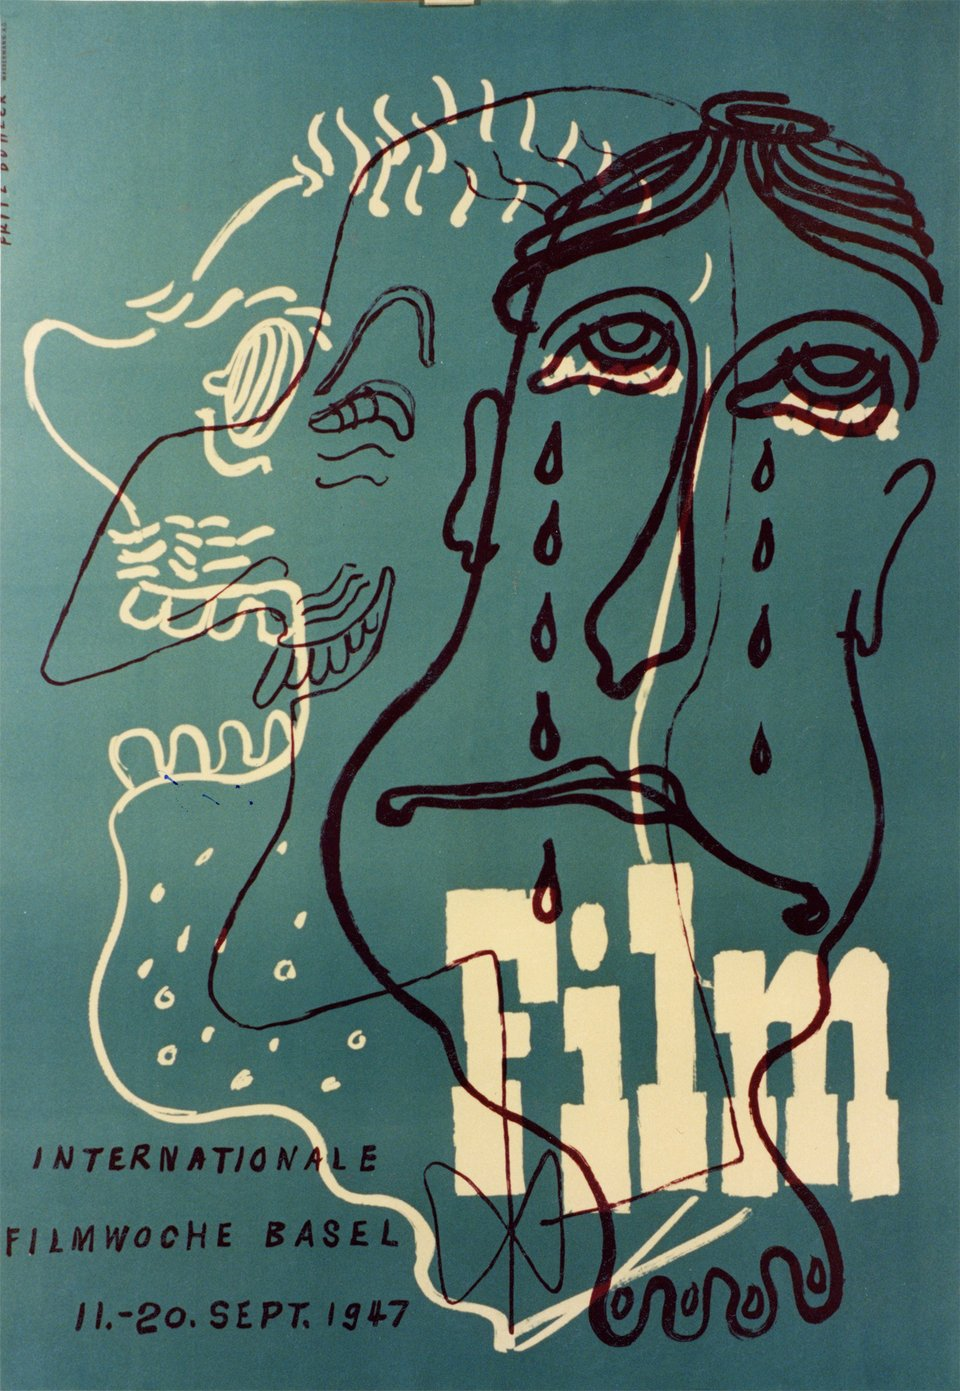 Film, Internationale Filmwoche Basel – Affiche ancienne – Fritz BUHLER – 1947